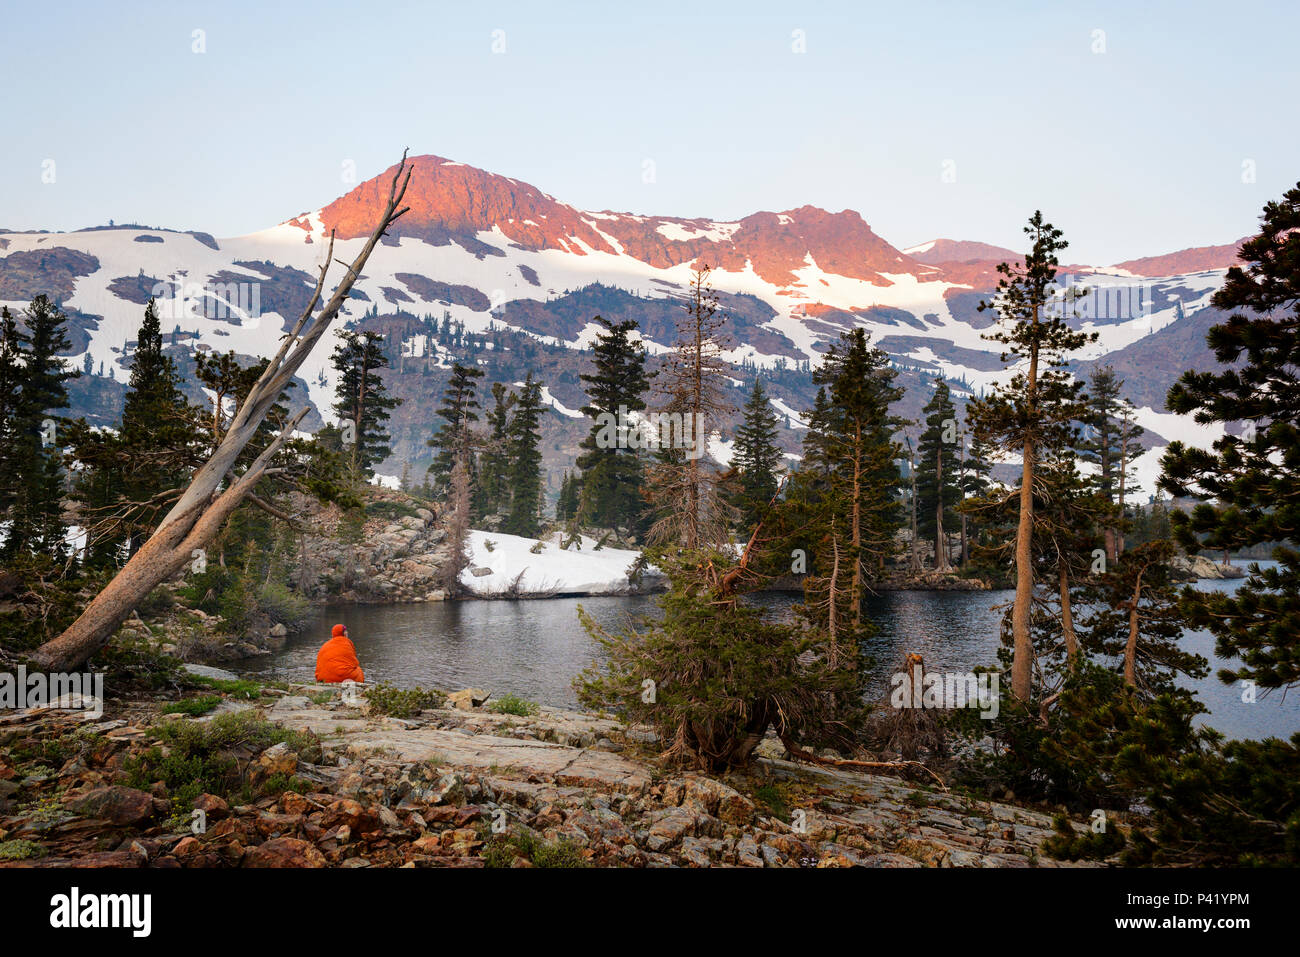 Backpacker watching the smoky sunrise at Half Moon Lake in the Desolation wilderness hike in south lake tahoe, California,USA. - Stock Image